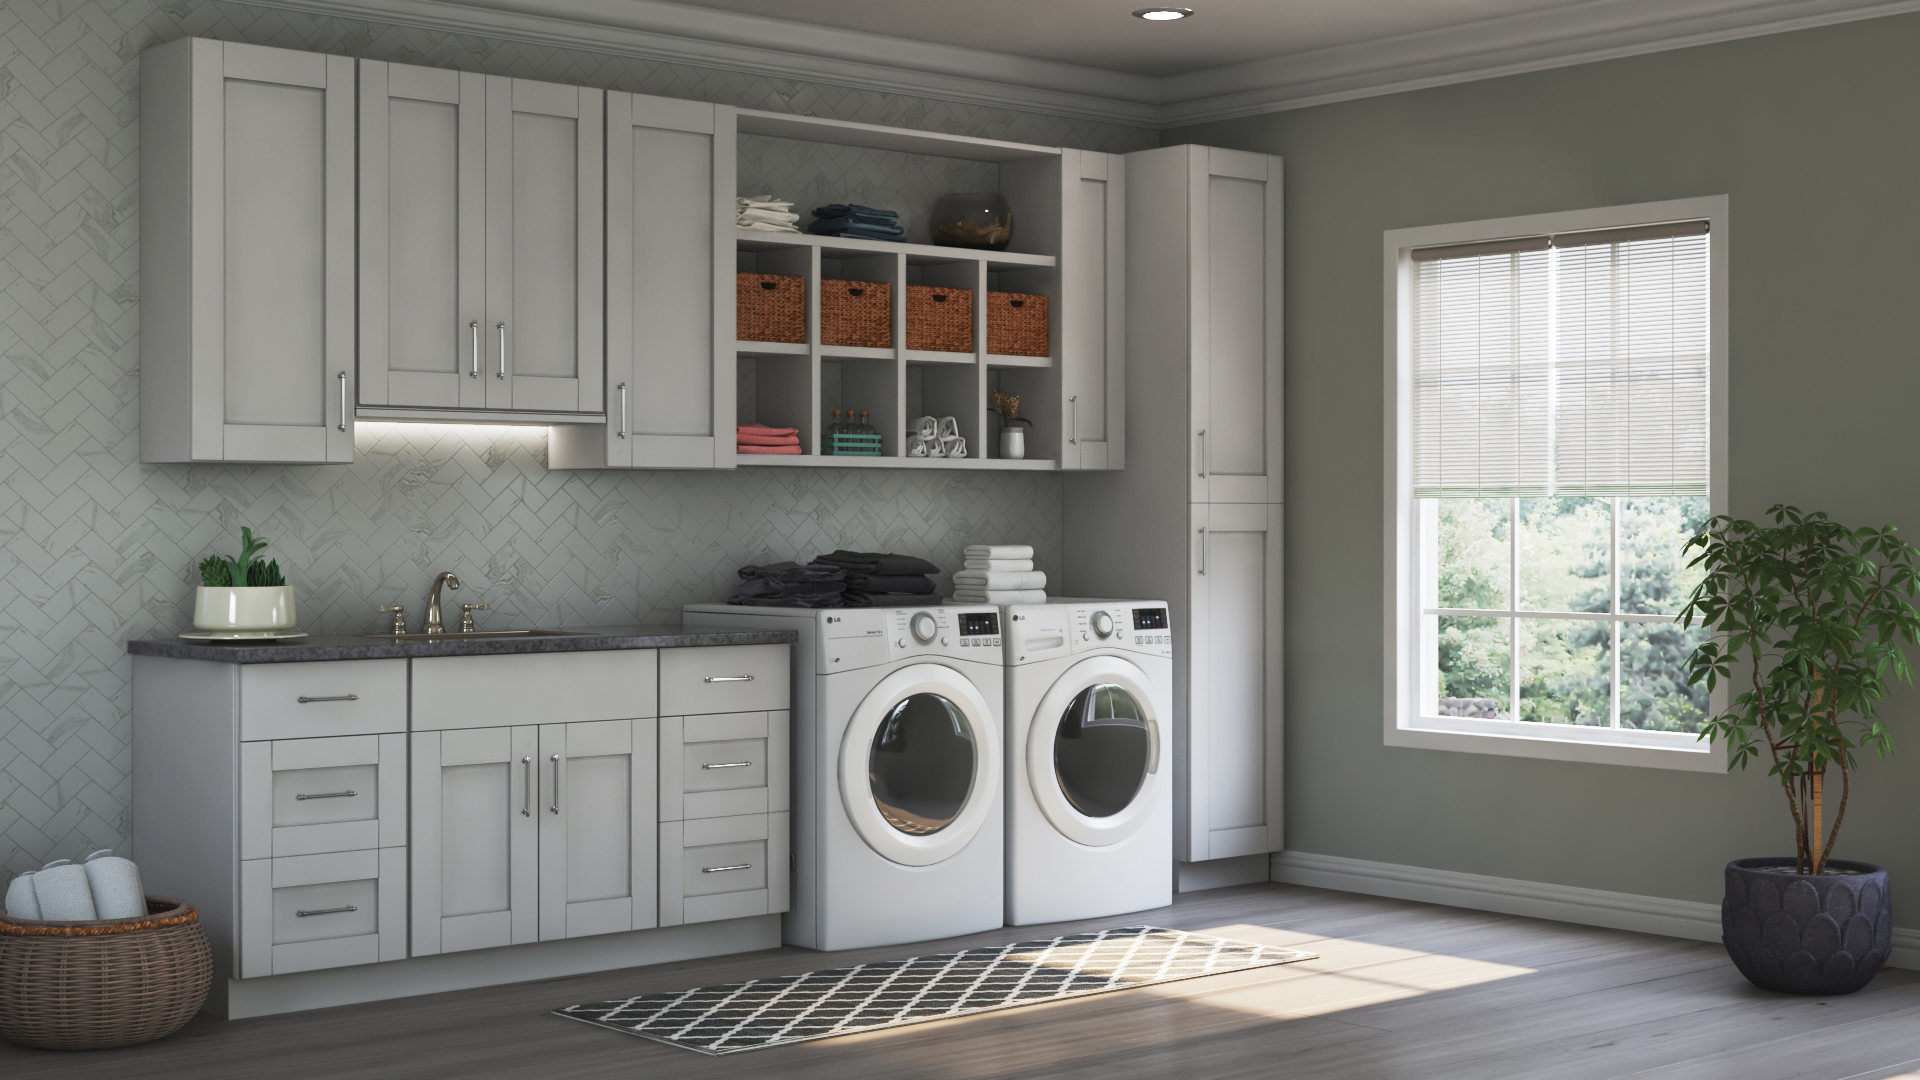 Hampton Bay Shaker Specialty Cabinets In Dove Gray